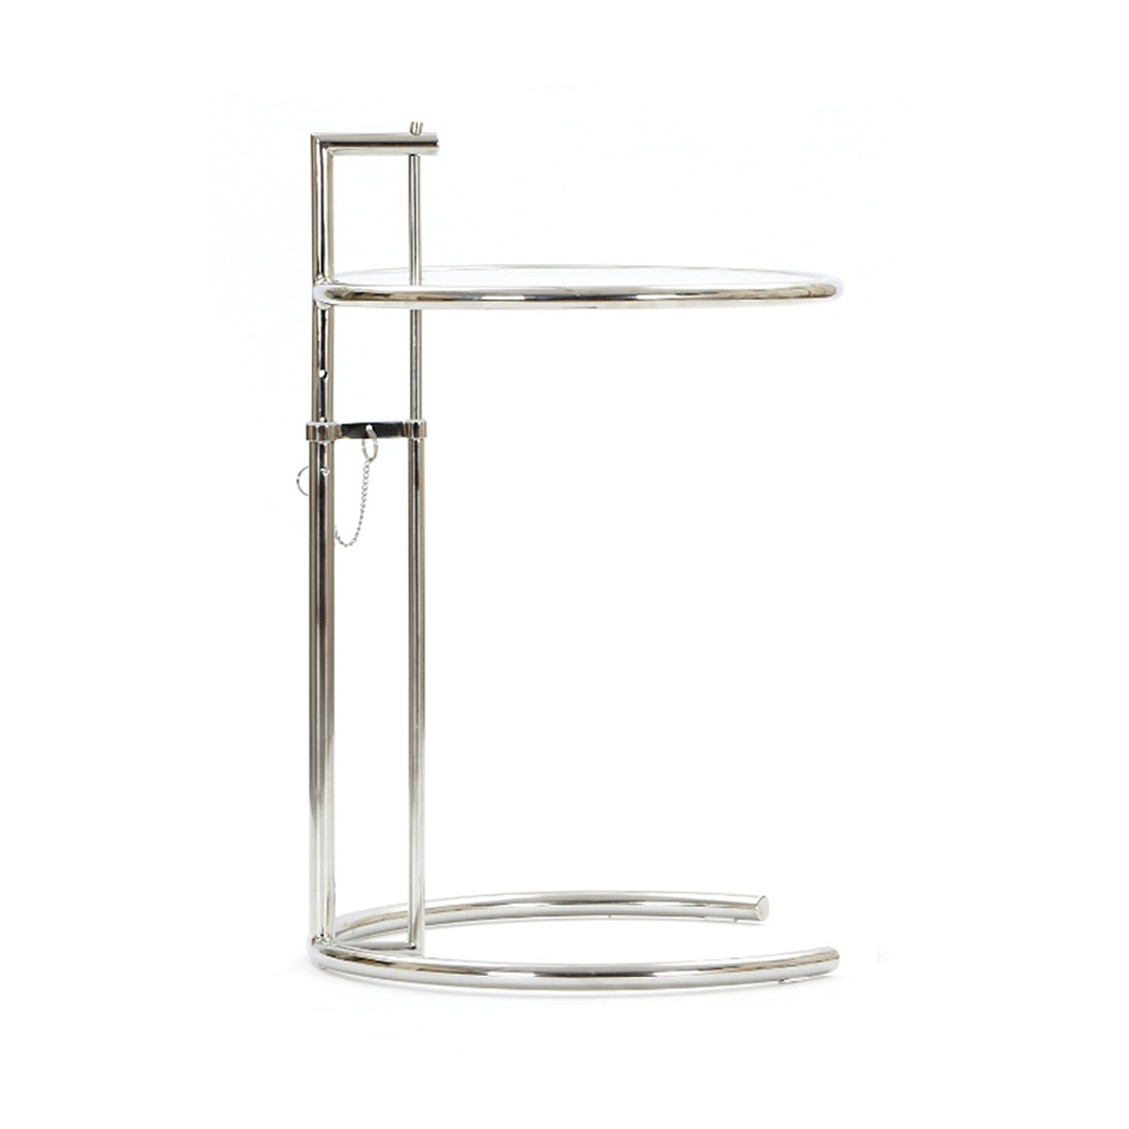 Eileen Gray Style Adjustable Glass Table E Stainless